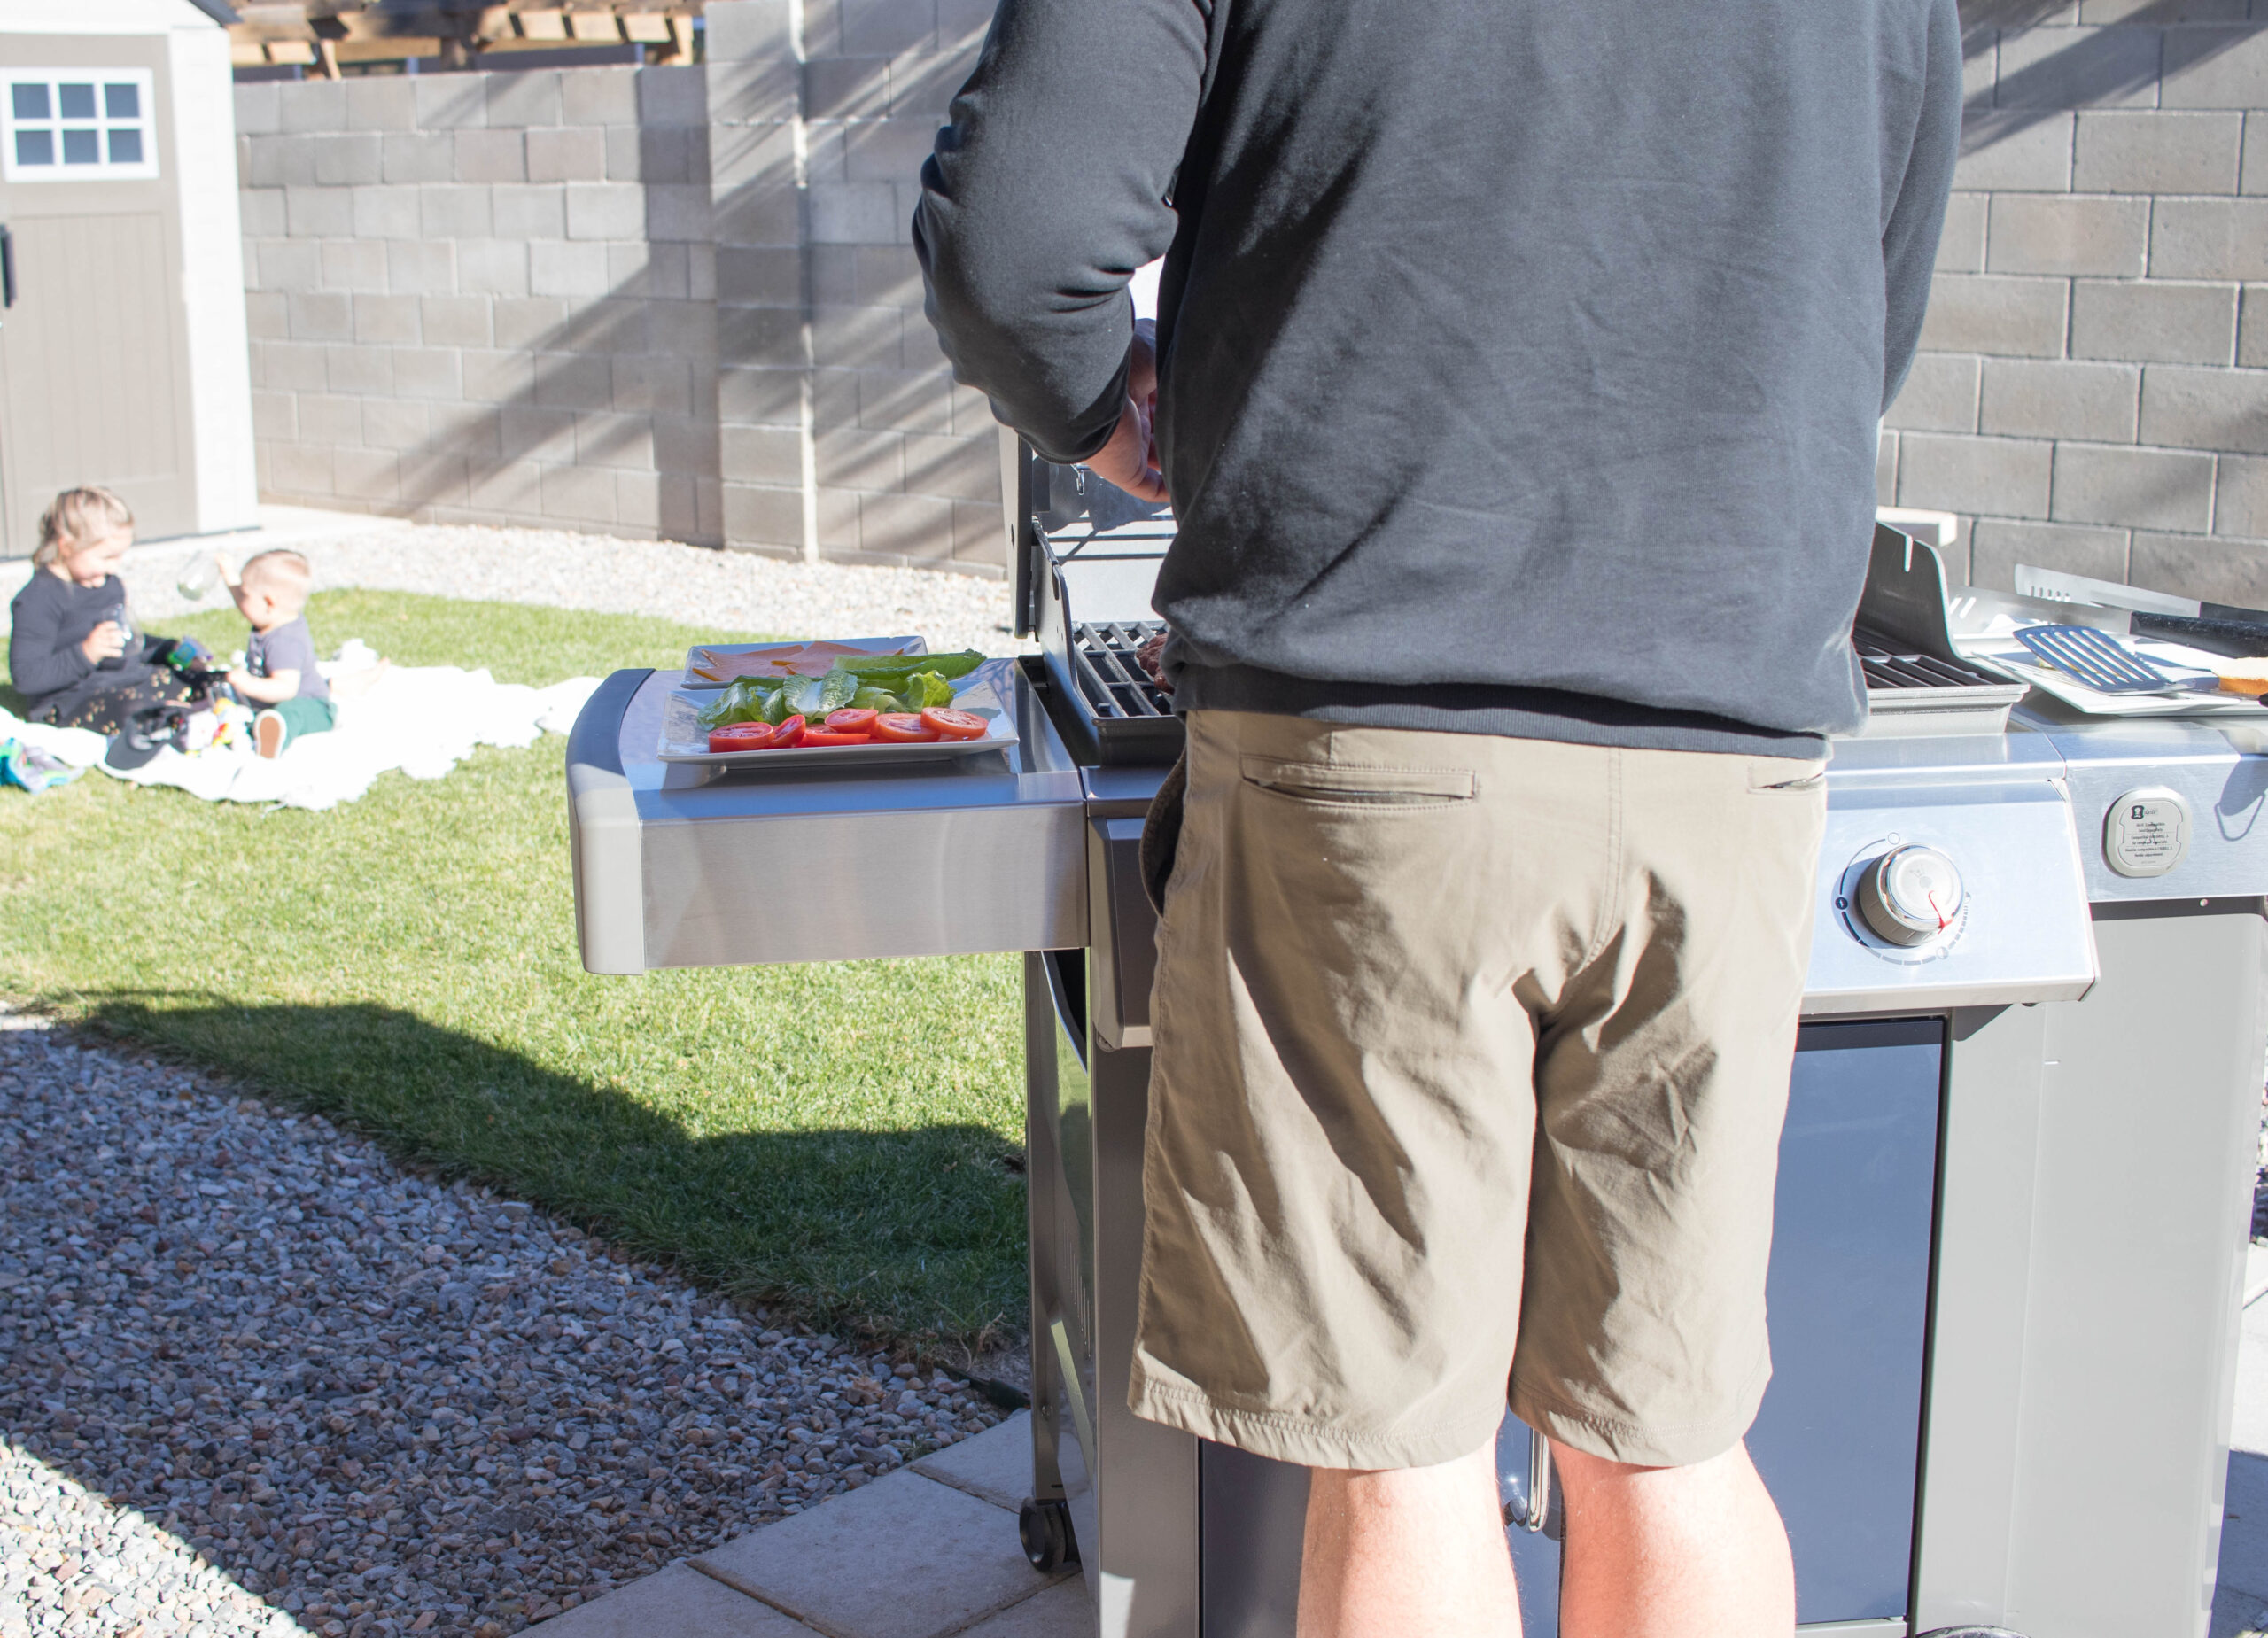 easy tailgating ideas at home #athomeactivties #familyfriendly #tailgating